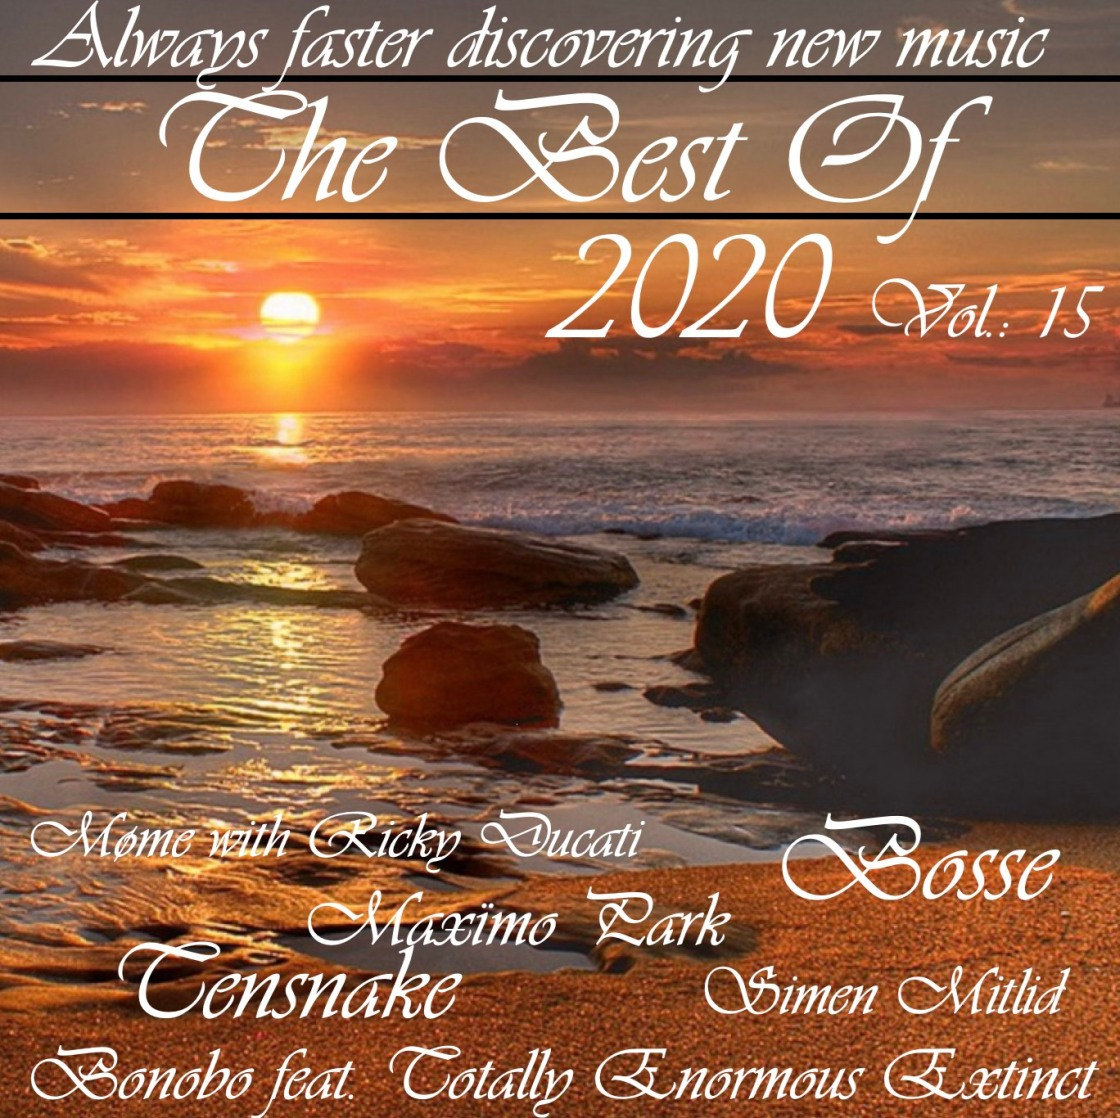 The Best Of 2020 Vol. 15